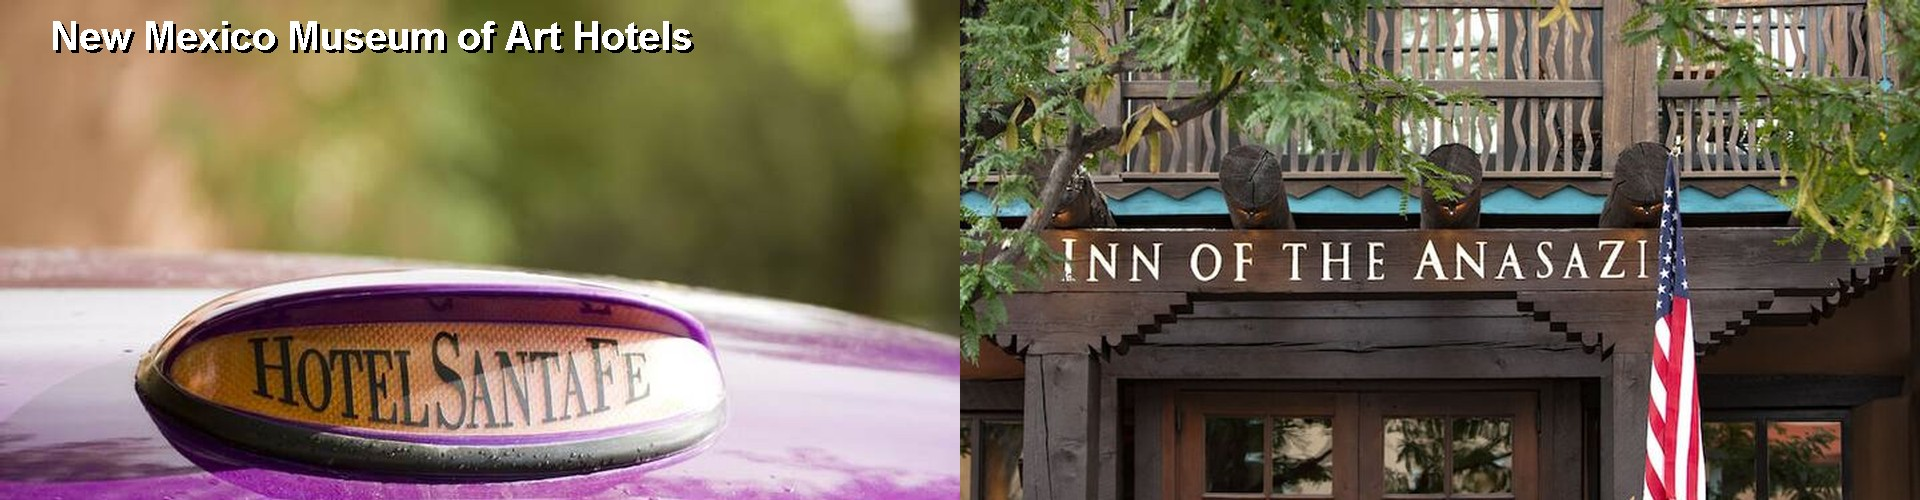 5 Best Hotels near New Mexico Museum of Art